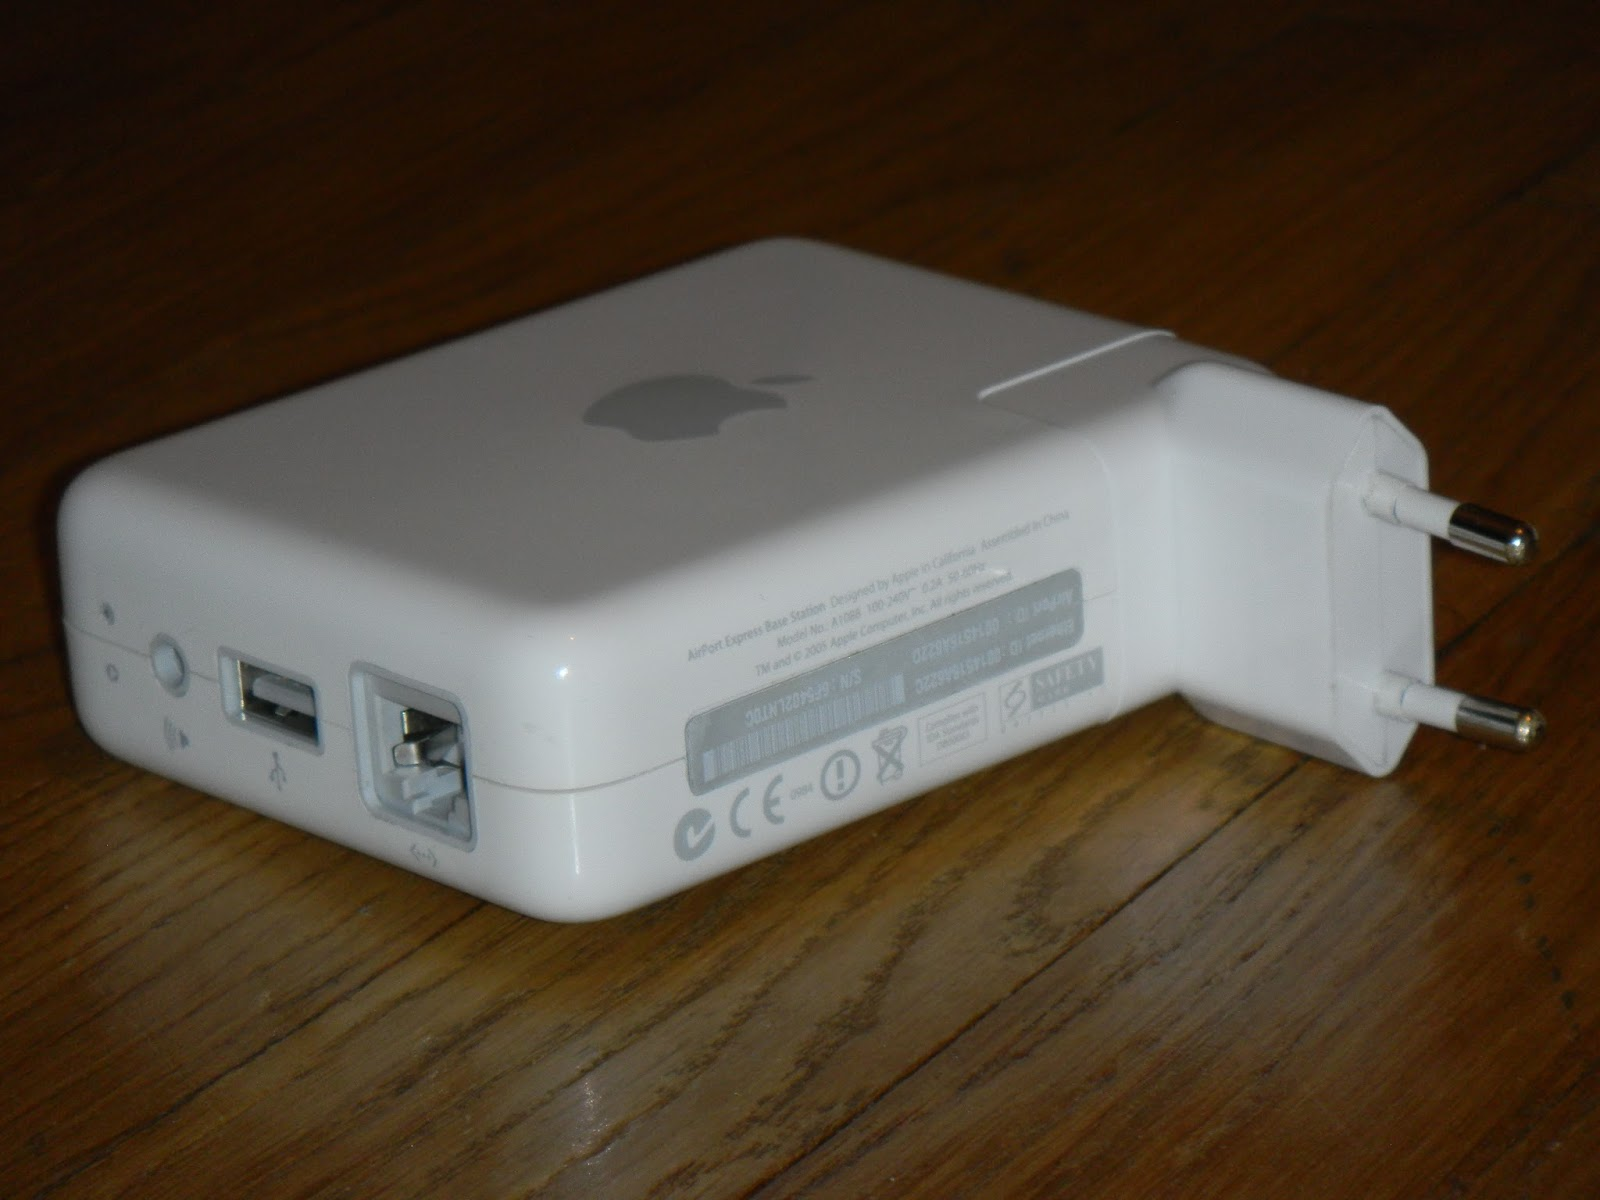 Infrequent Sound Sextex Technology Apple Airport Express A1088 Base Station With 80211b G Wi Fi